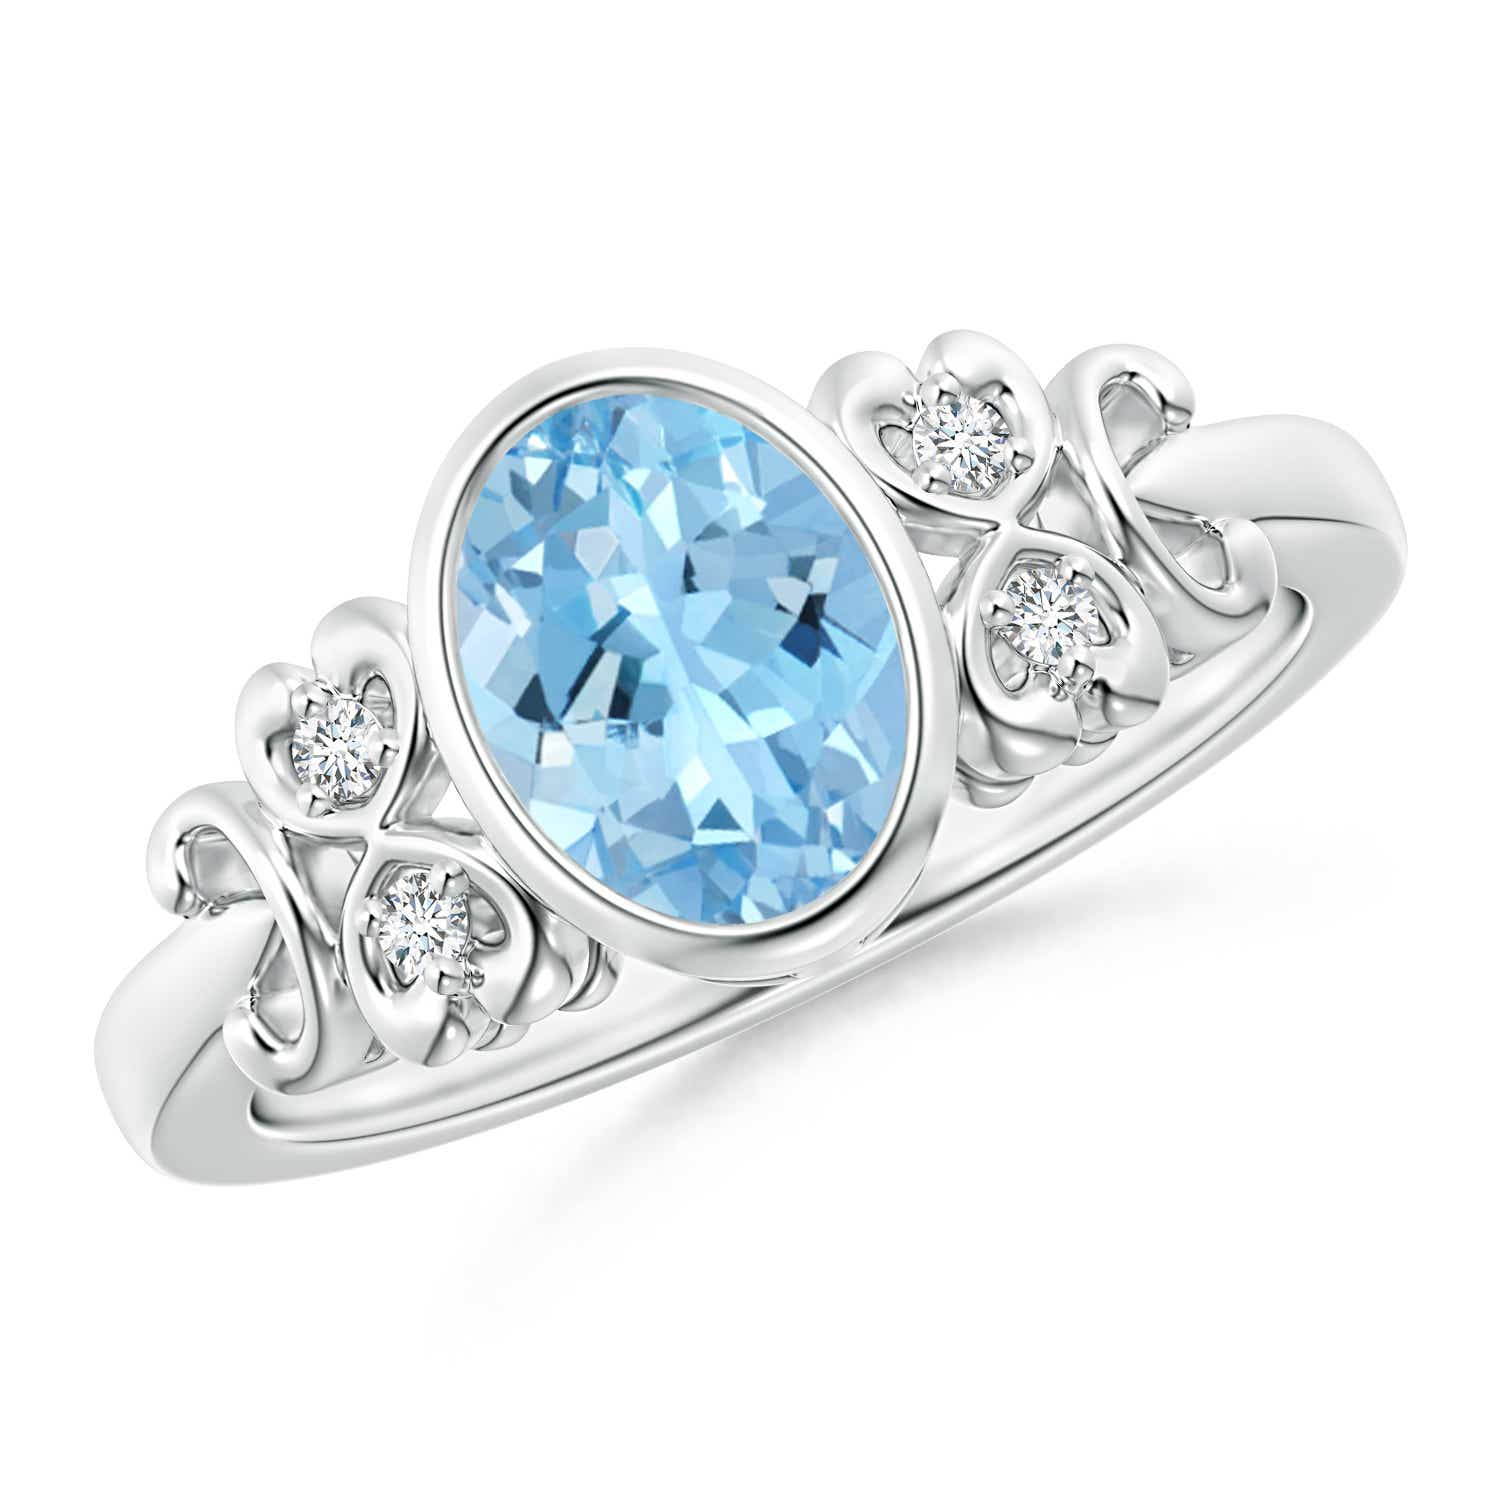 Angara Oval Aquamarine Ring with Diamond Wedding Band Set in White Gold